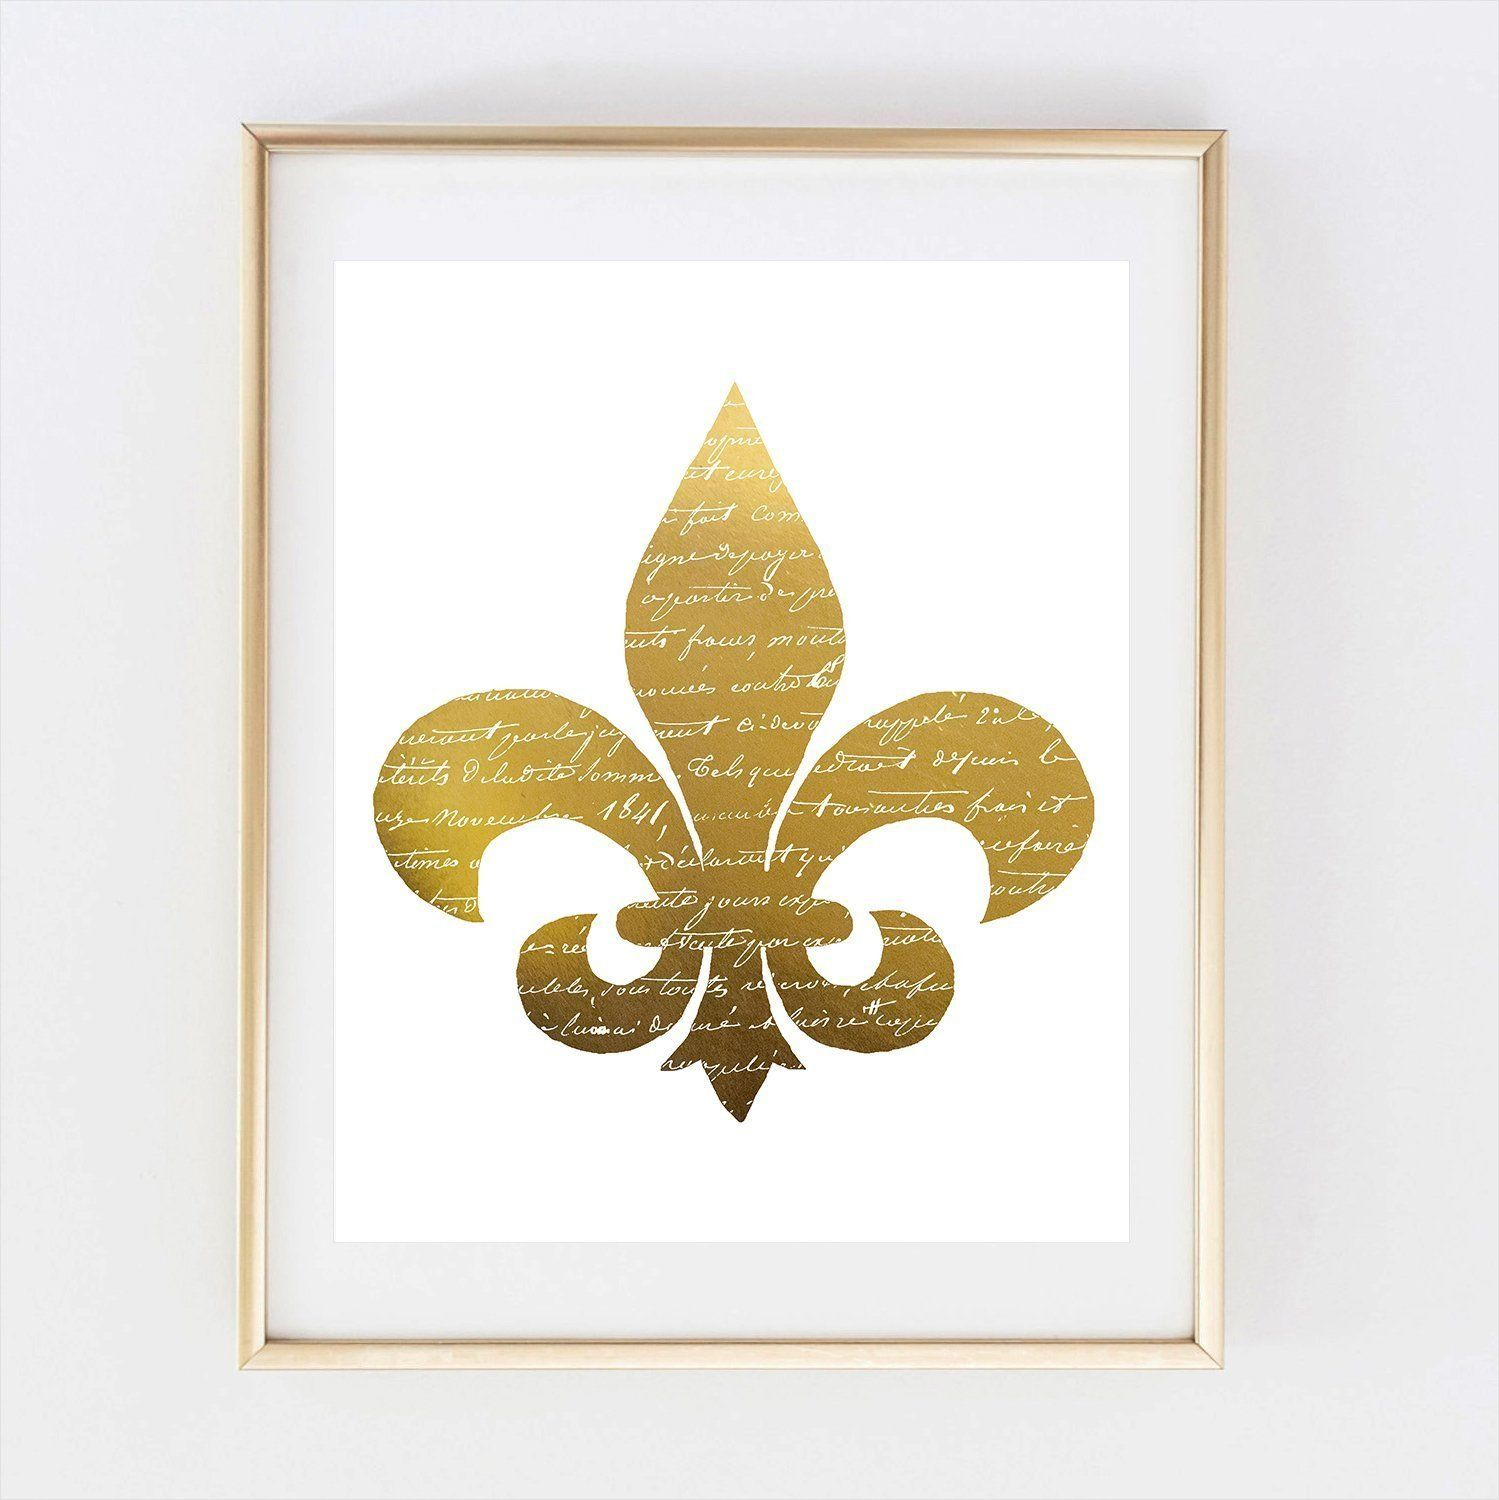 Amazon.com: Fleur de Lis Vintage France Old Gold Foil Leaf Wall Art ...